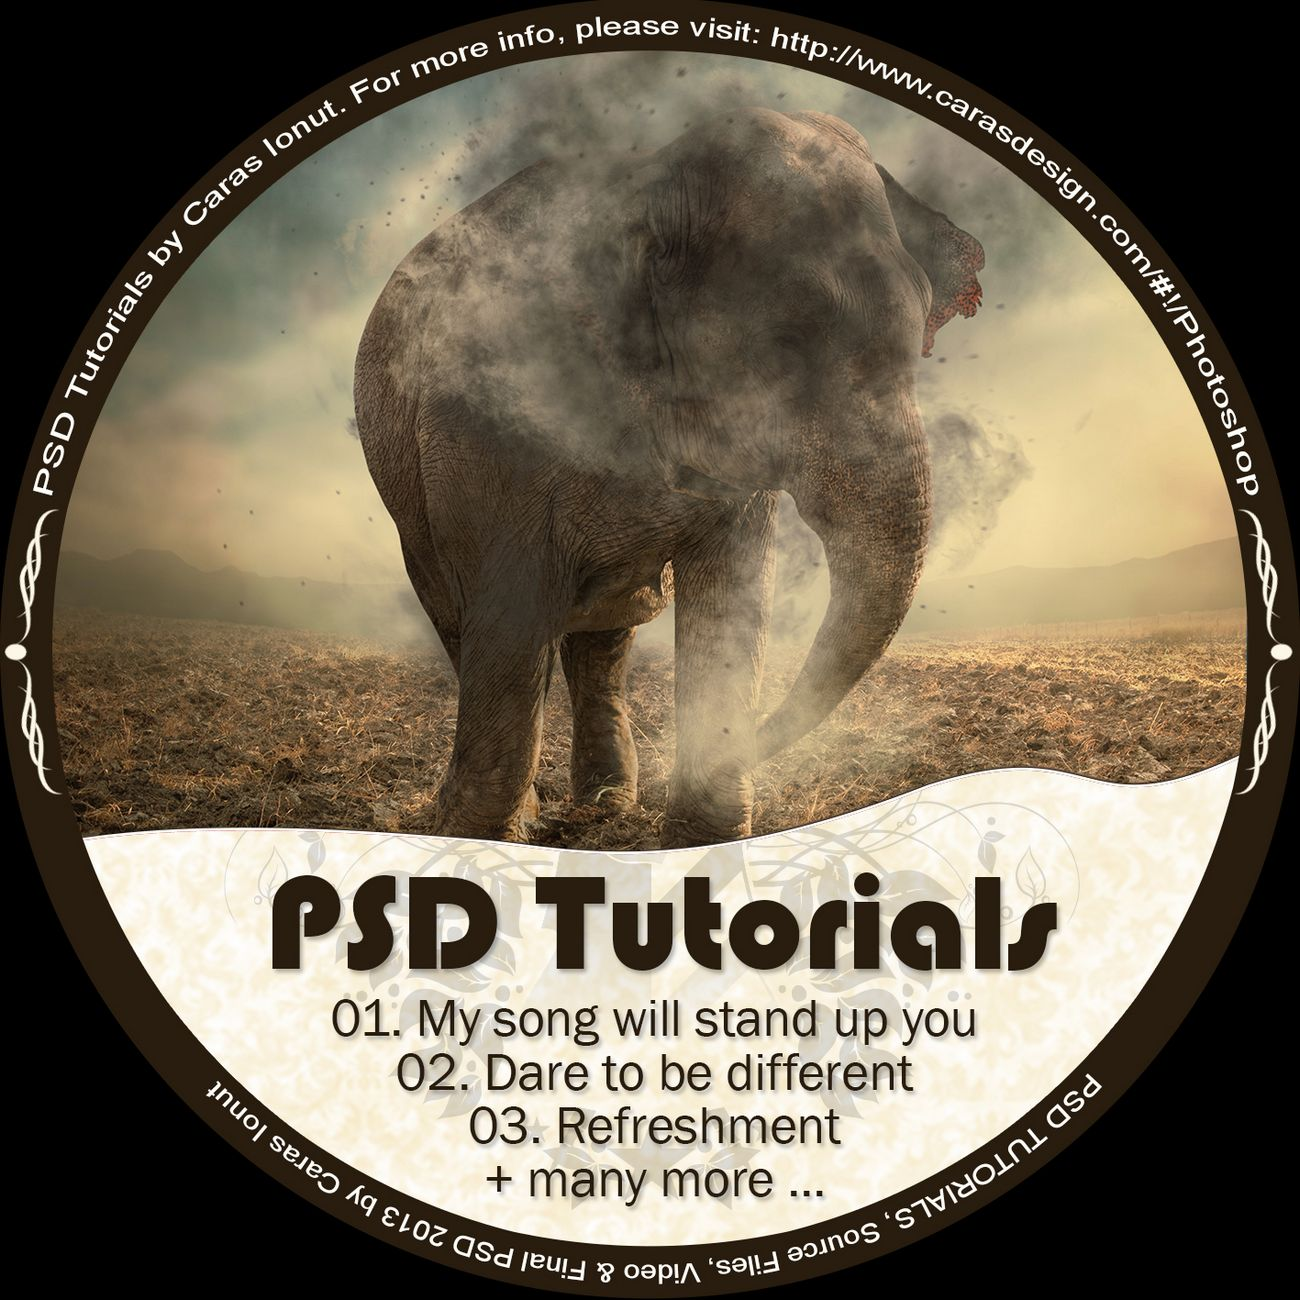 Perfect Gift on Personalized DVD. You can add up to 10 Tutorials from the PSD Tutorial & Special Tutorial list and I will burn them to a DVD, with printed DVD and cover. The shipping cost is 10 Euro's worldwide, by airmail. The shipping time is around 7 up to 14 working day's.